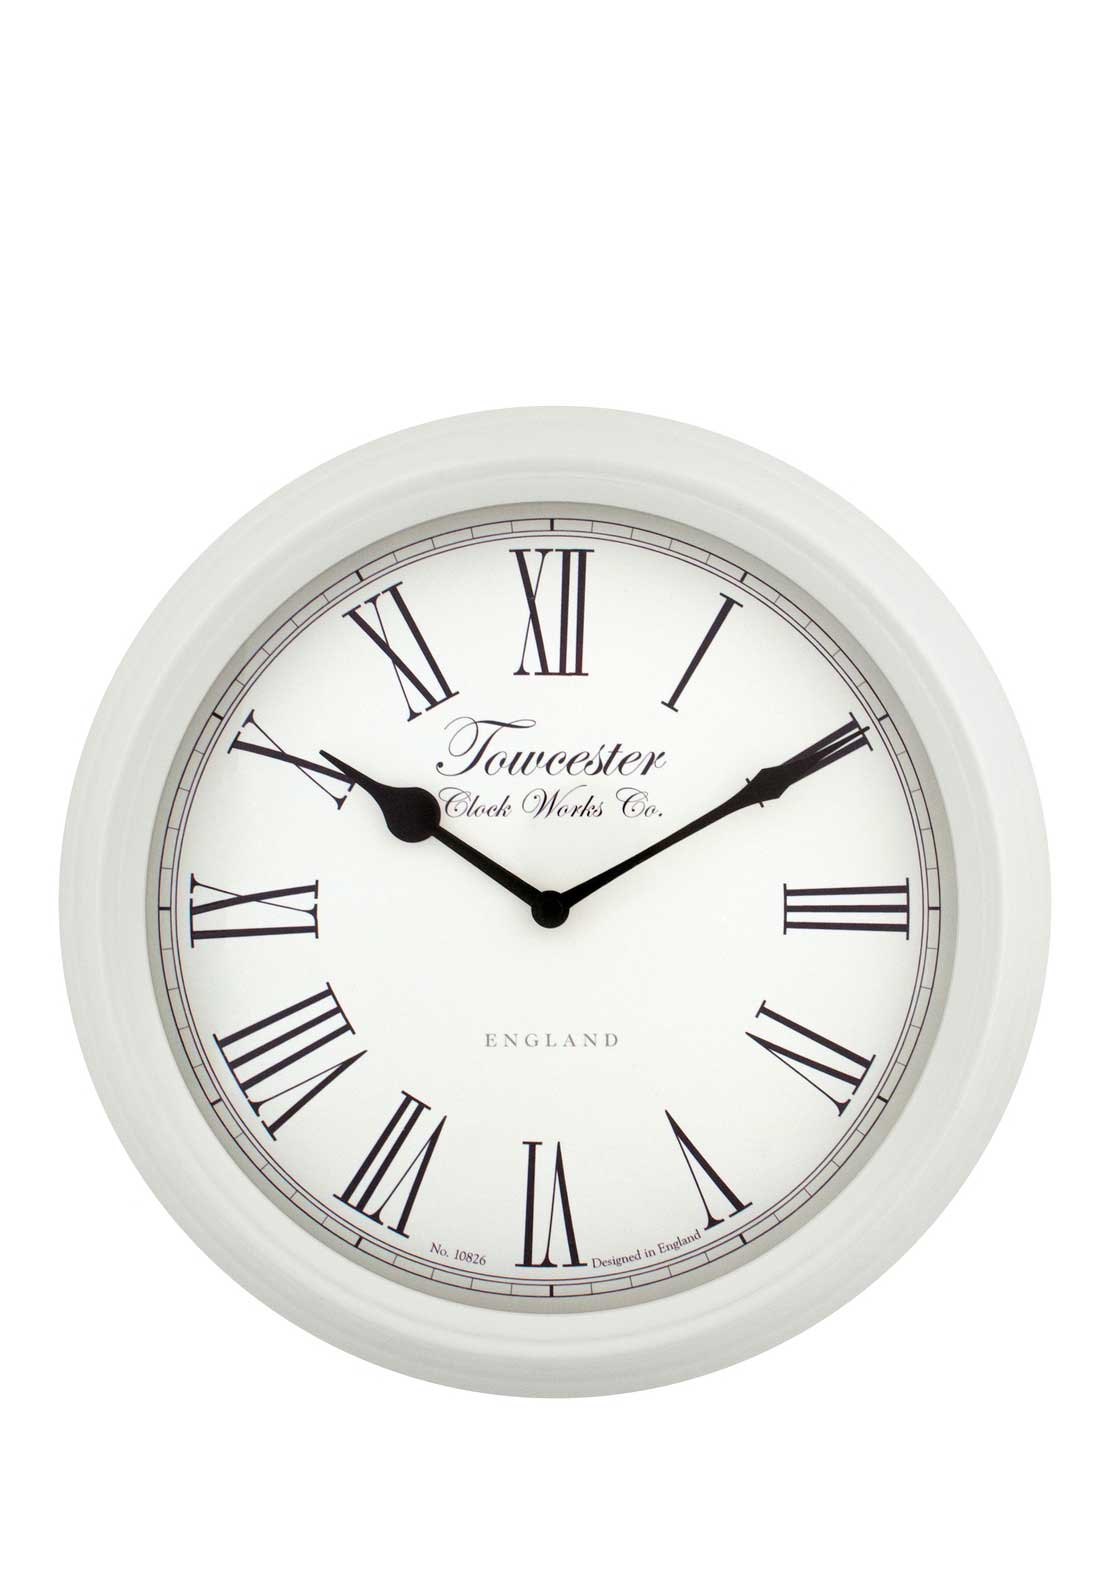 Acctim Rosedale Wall Clock, White